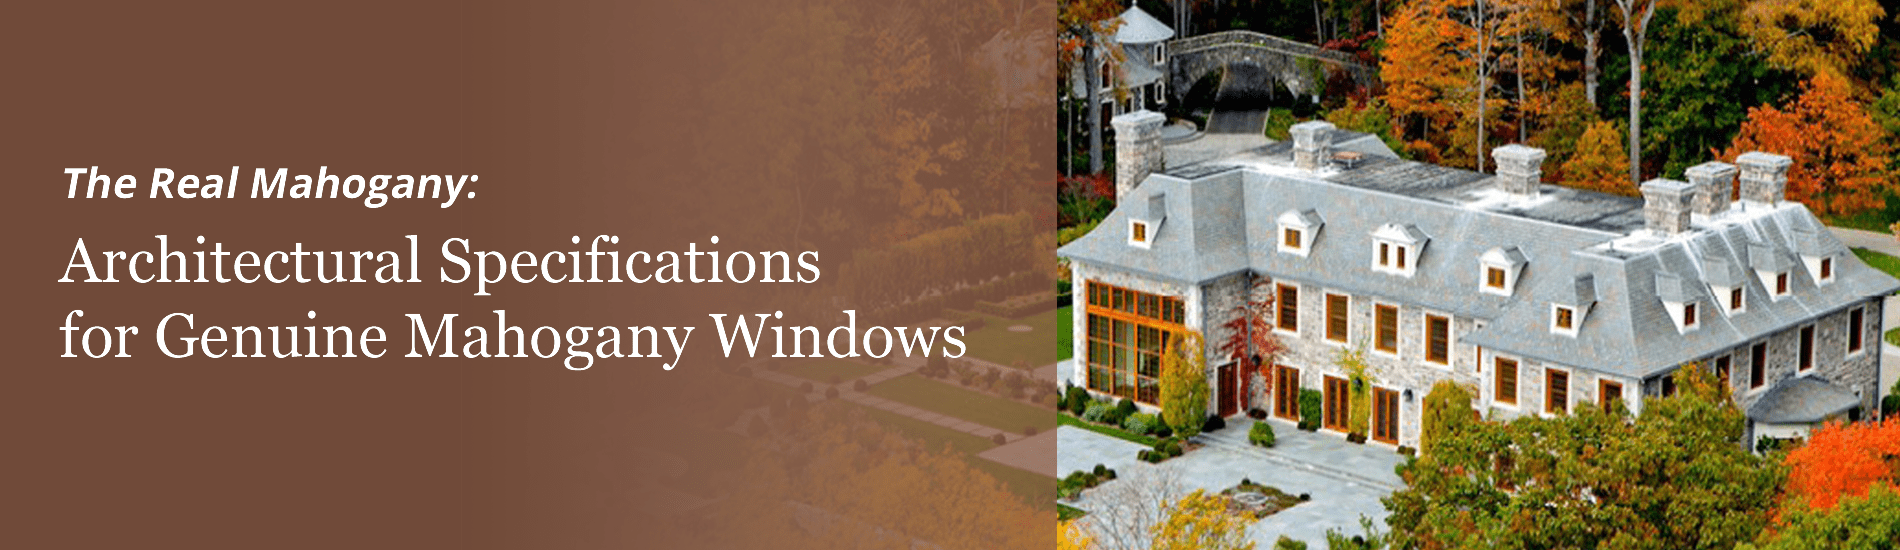 Architectural Specifications for Genuine Mahogany Windows